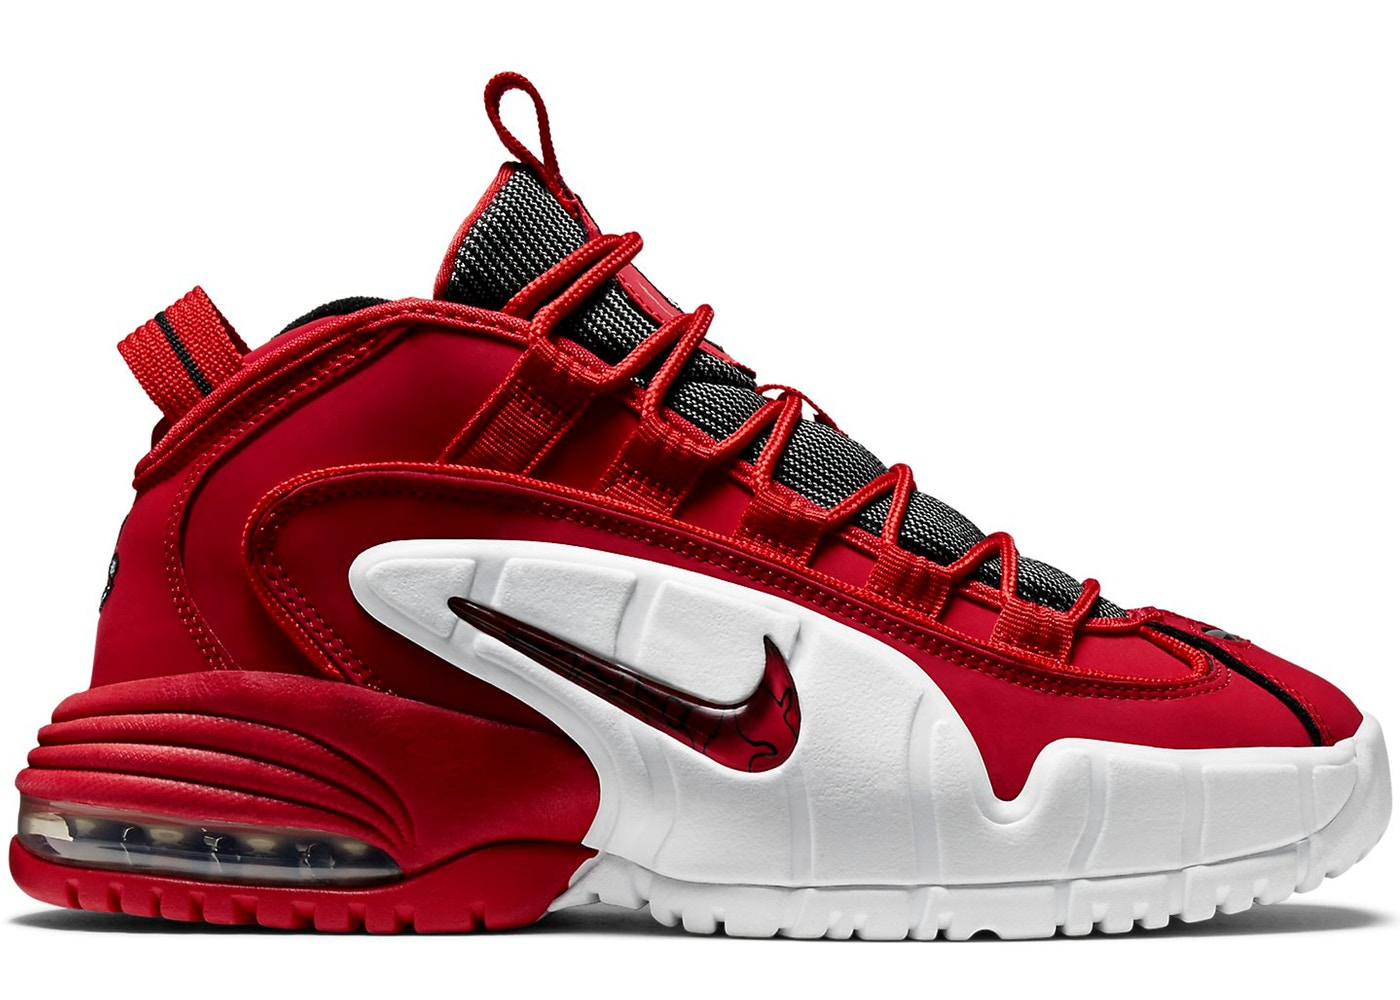 brand new e91ac fe065 Air Max Penny Trainers  Nike Basketball Shoes - Volatility ...